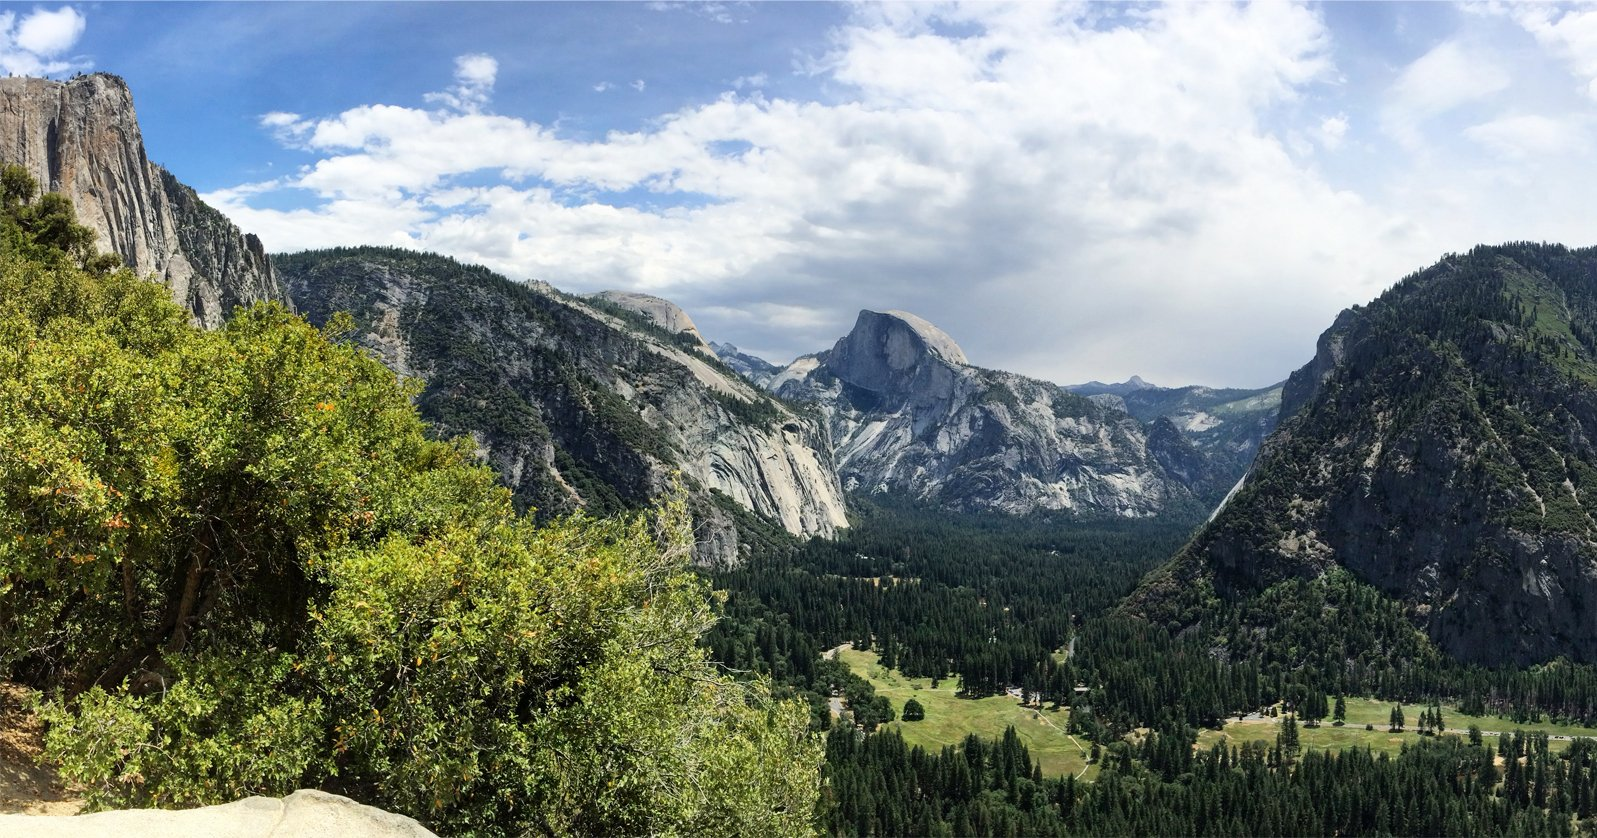 a view of Half Dome in Yosemite National Park, California